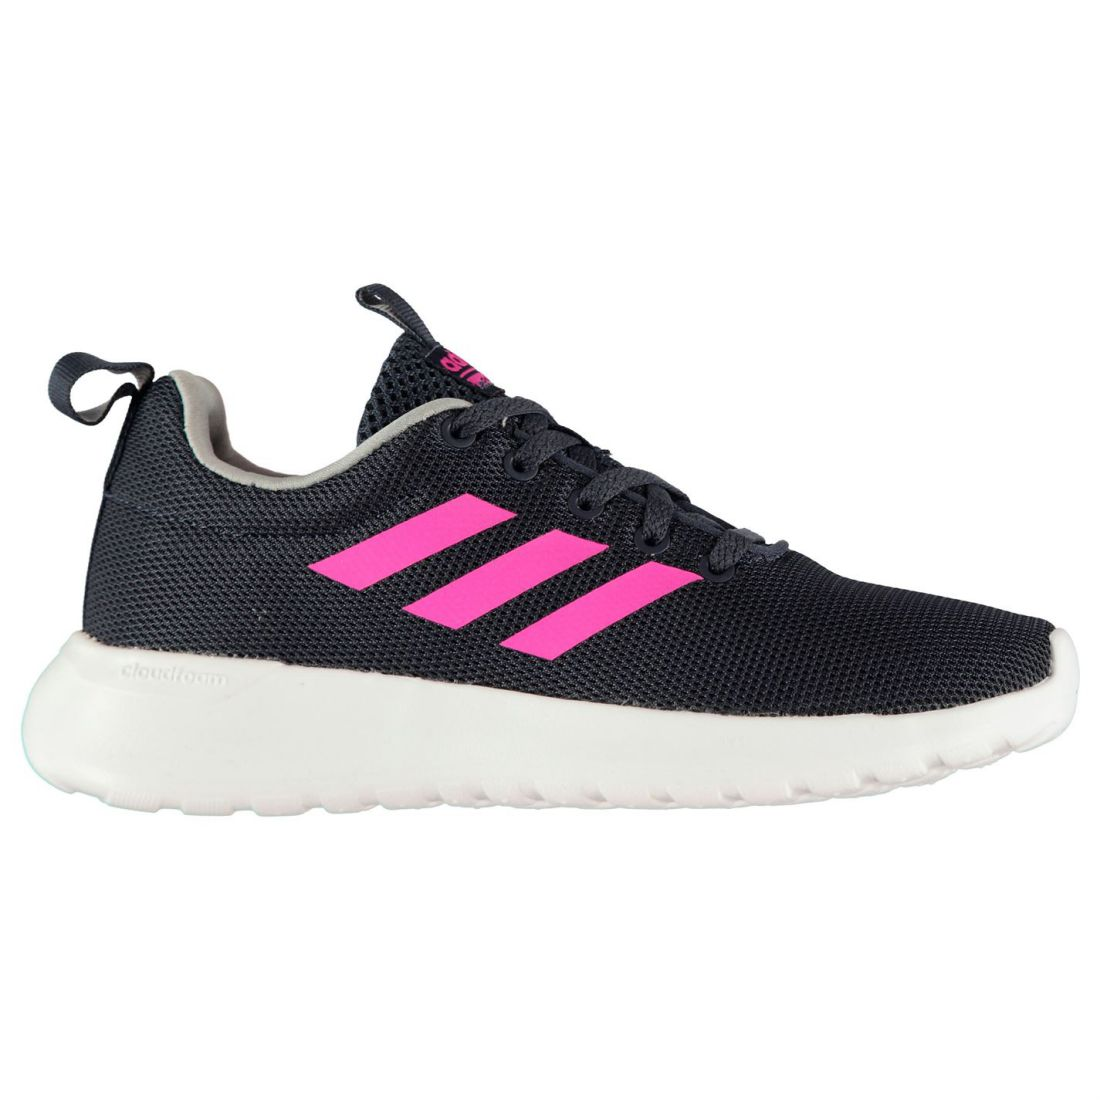 adidas Lite Racer Sneakers Youngster Girls Runners Laces Fastened Padded Ankle